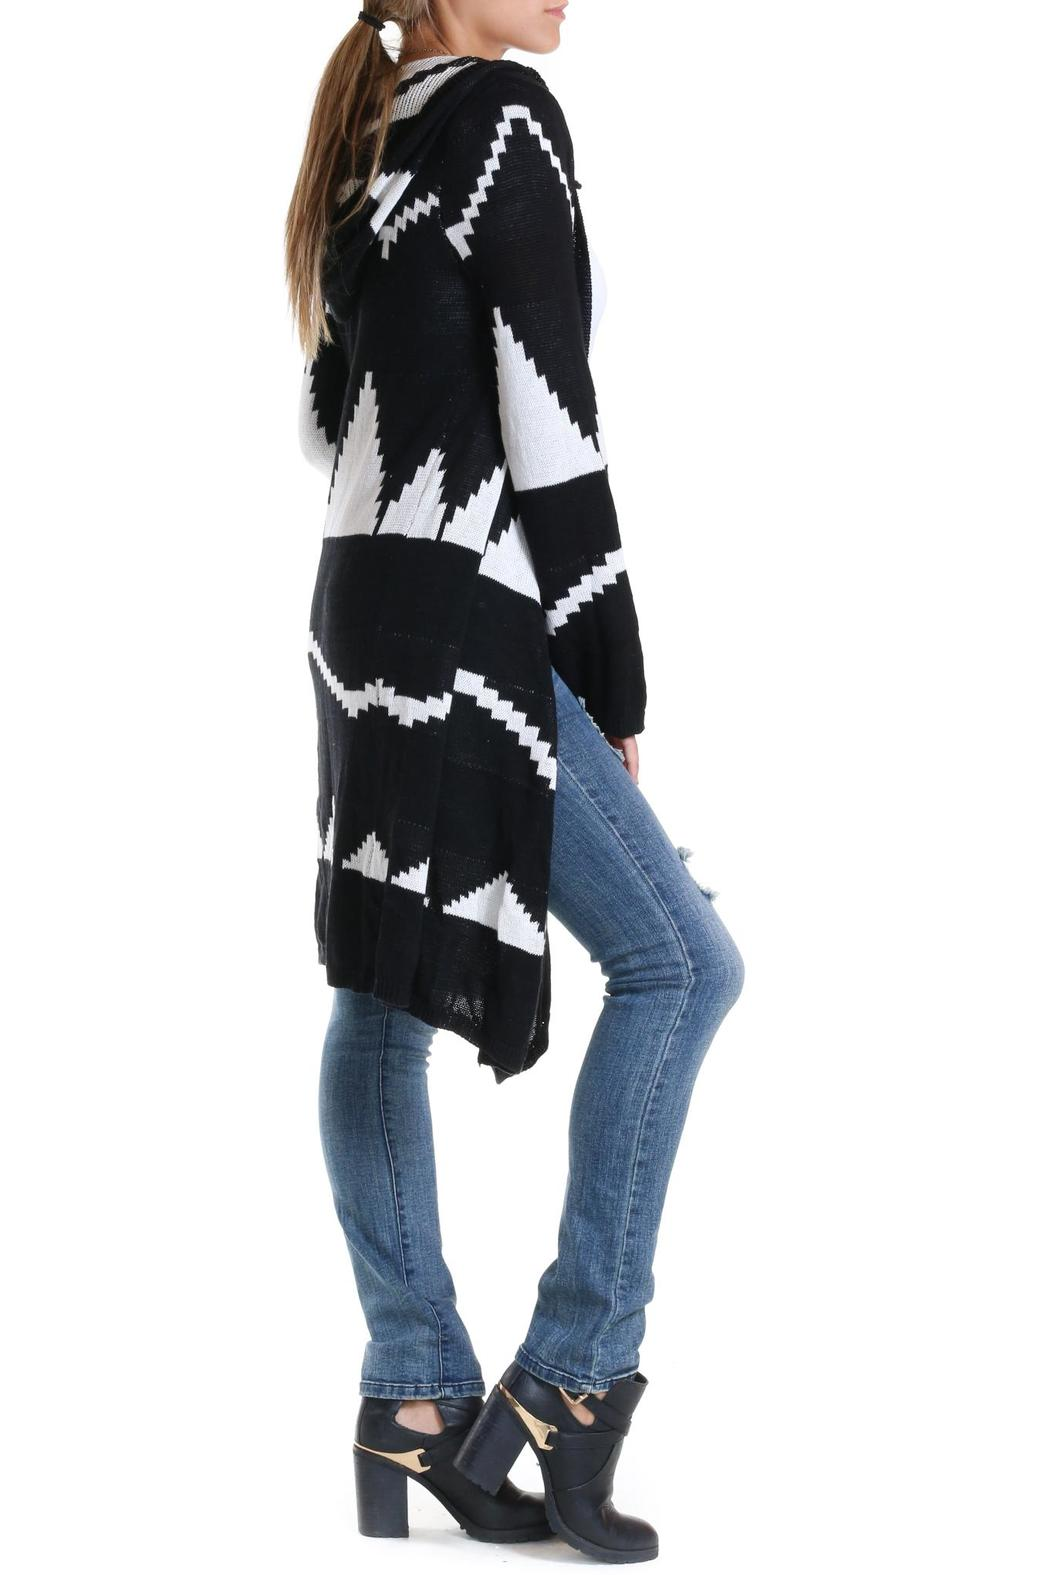 Elan Aztec Sweater Duster from Charleston by Apricot Lane ...